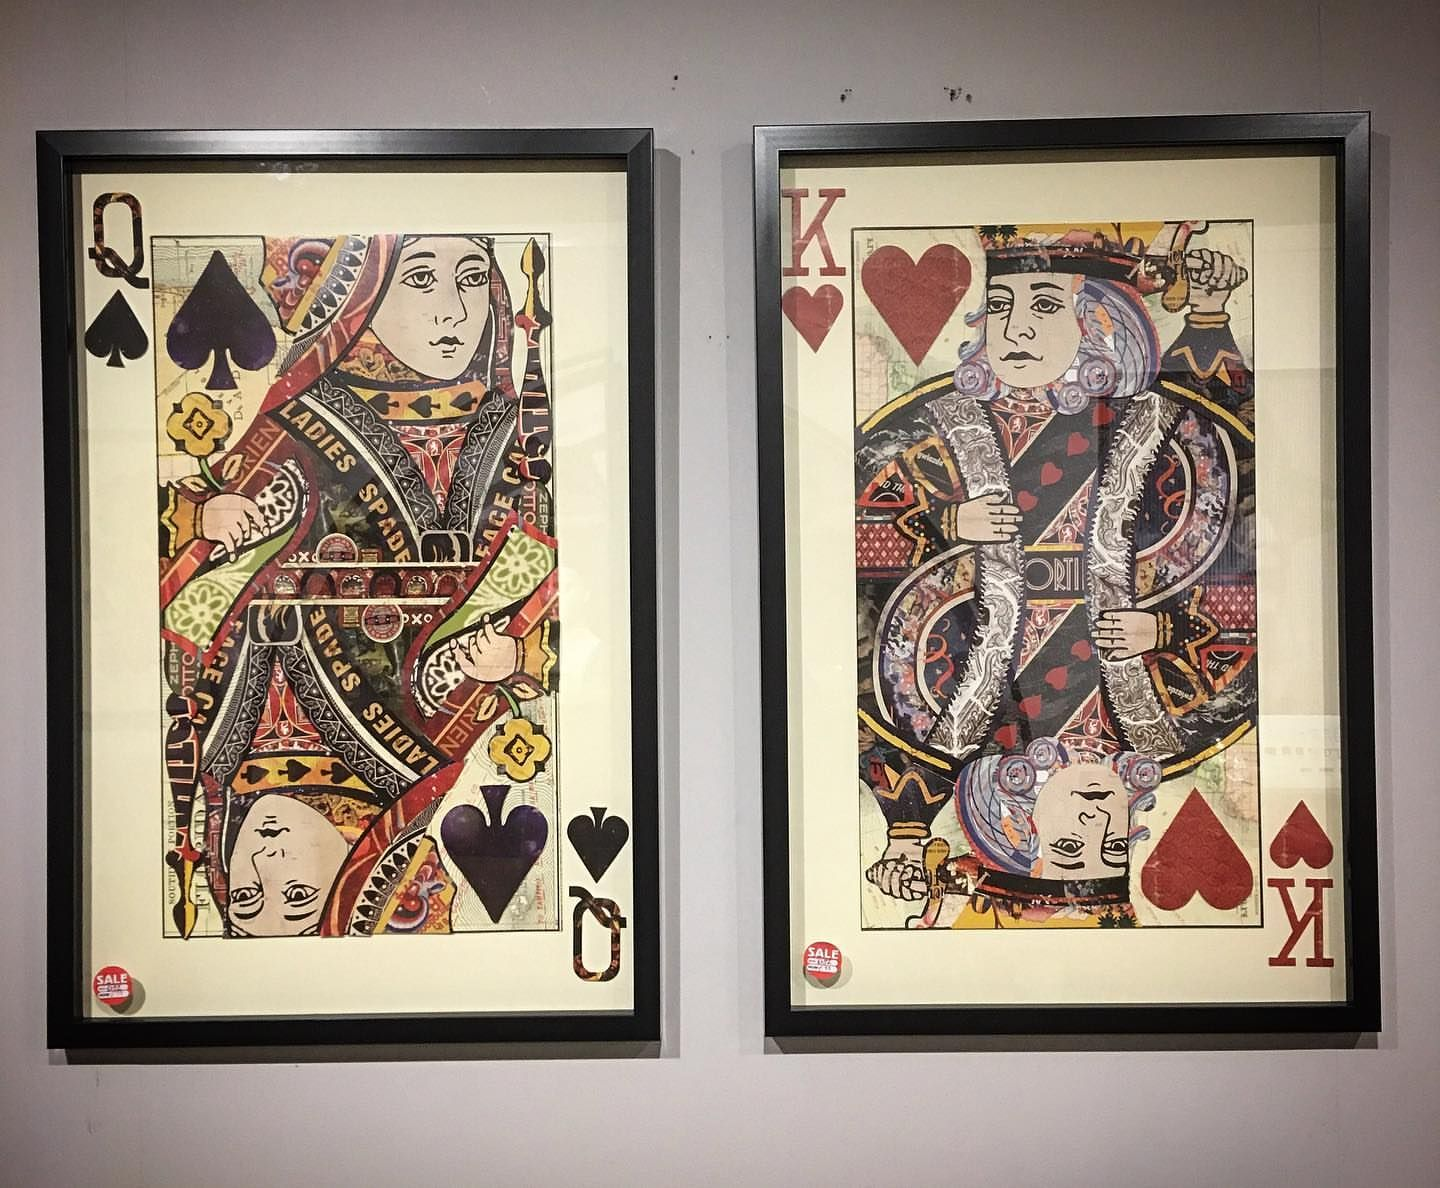 We've just got our playing card collage prints back in store now!